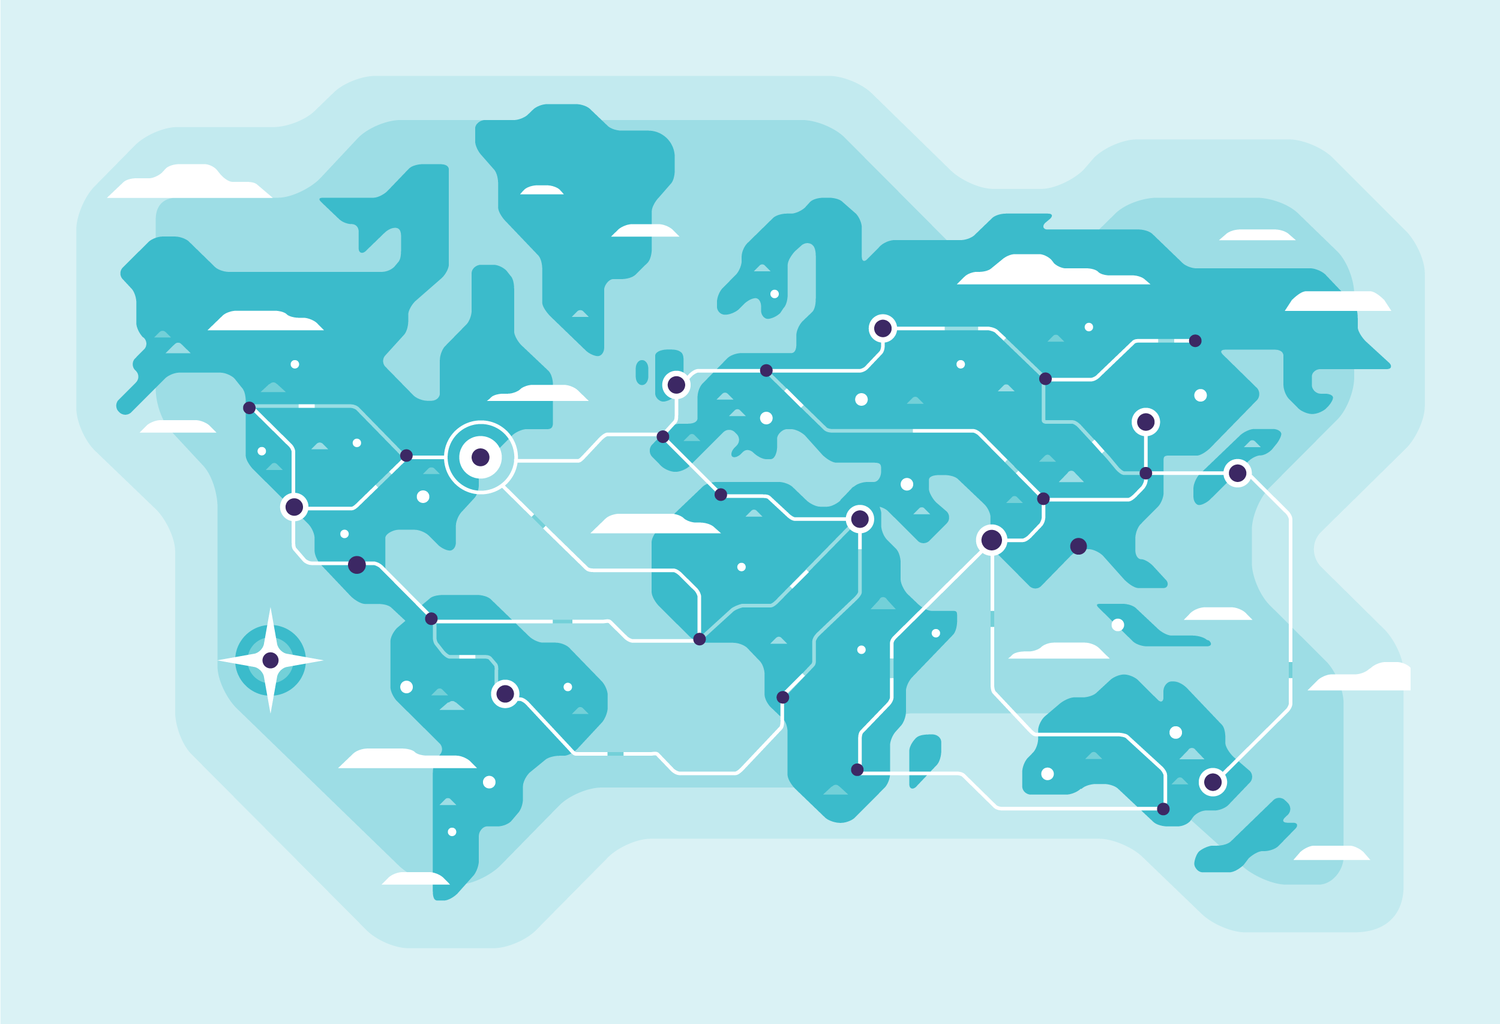 World map connected by network lines and circuitry. Illustration by Matt Anderson.